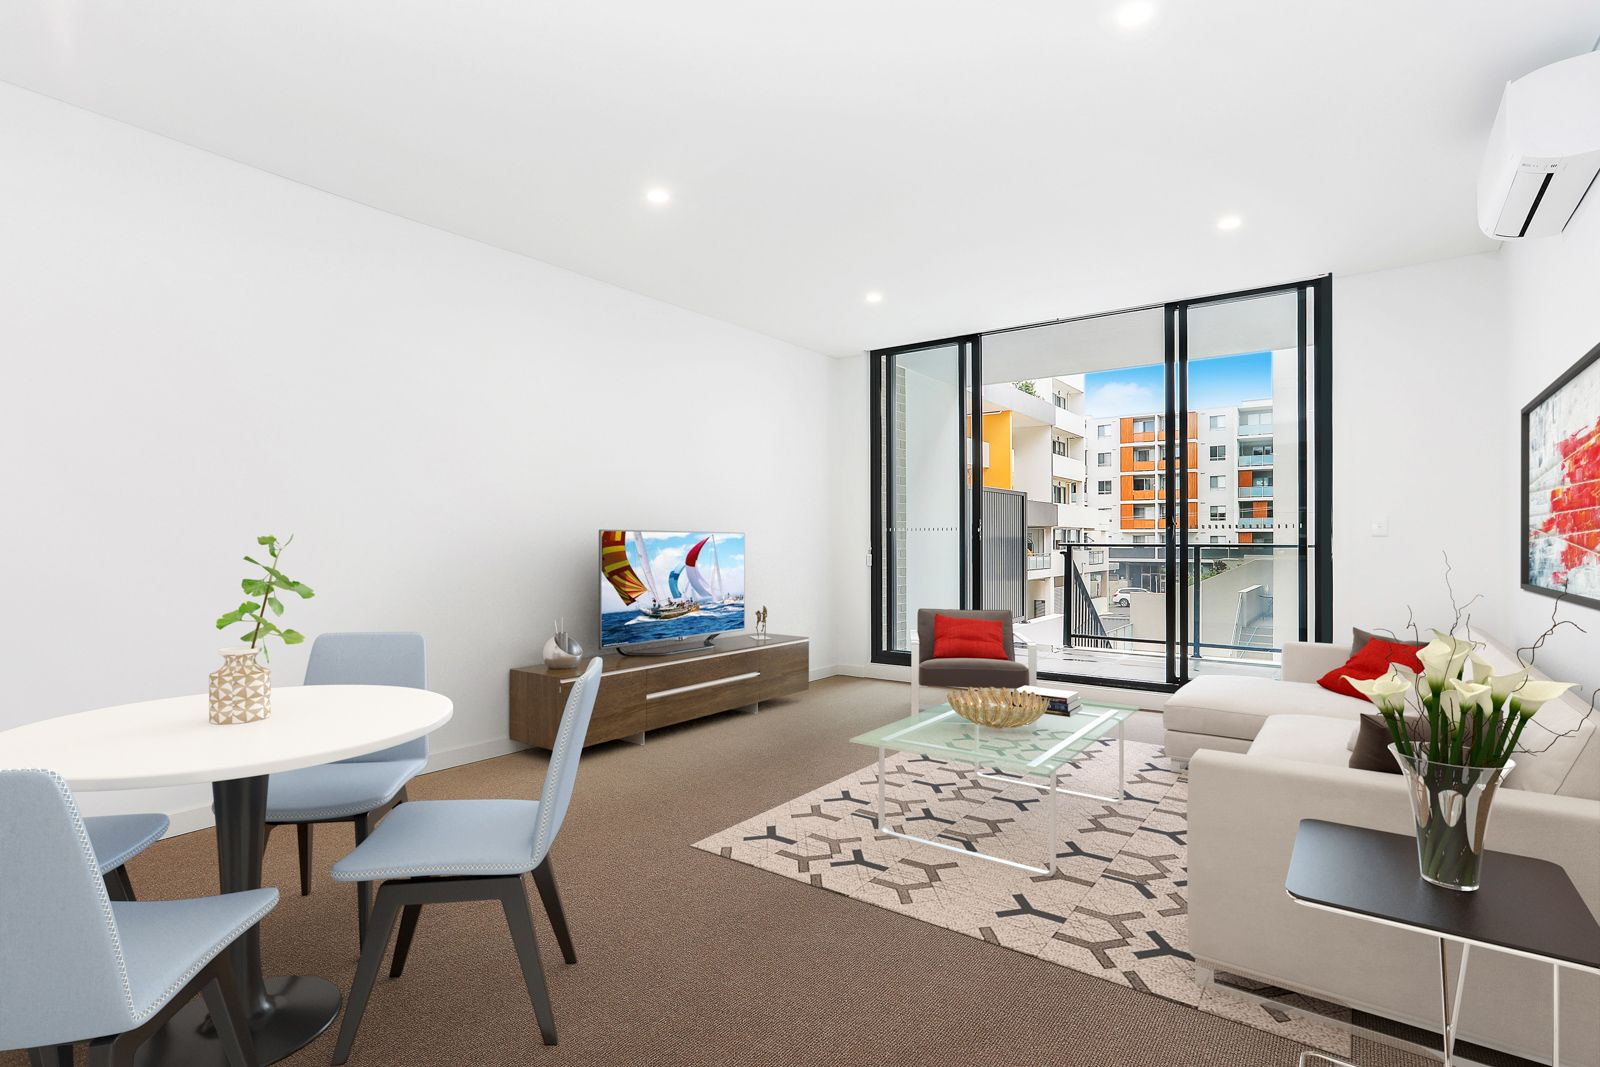 309/30-36 Warby St, Campbelltown NSW 2560, Image 0